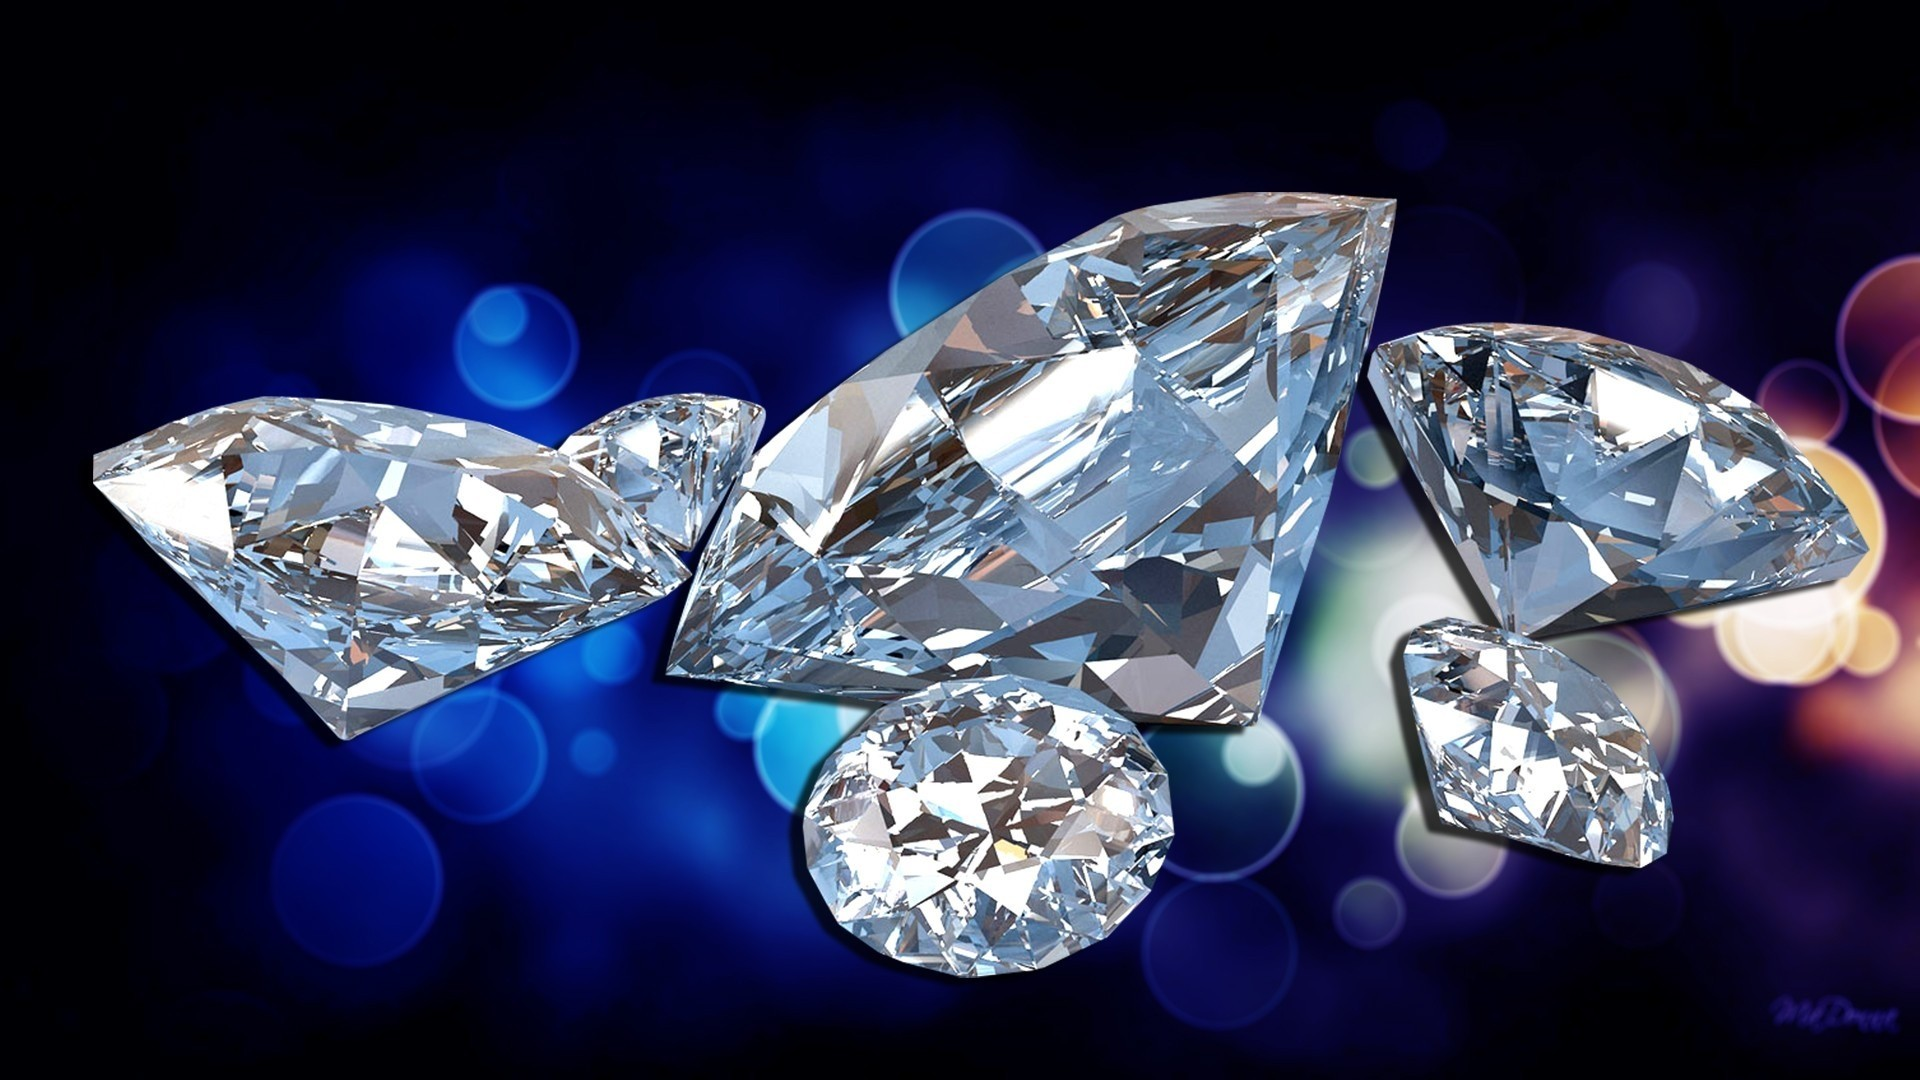 Diamond Full HD Wallpaper